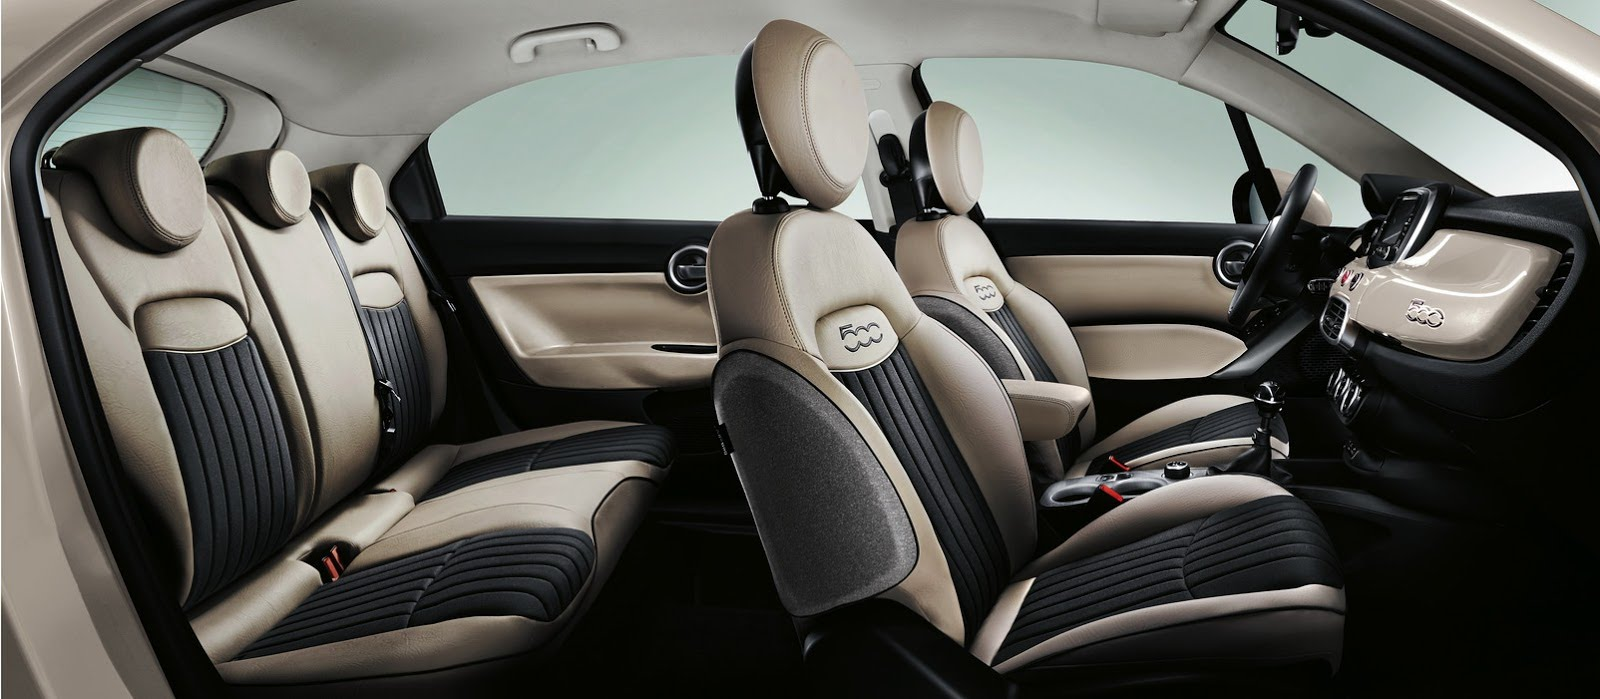 fantastic-design-of-the-white-and-black-seats-ideas-with-white-dash-ideas-as-the-fiat-500x-2015-interior-ideas